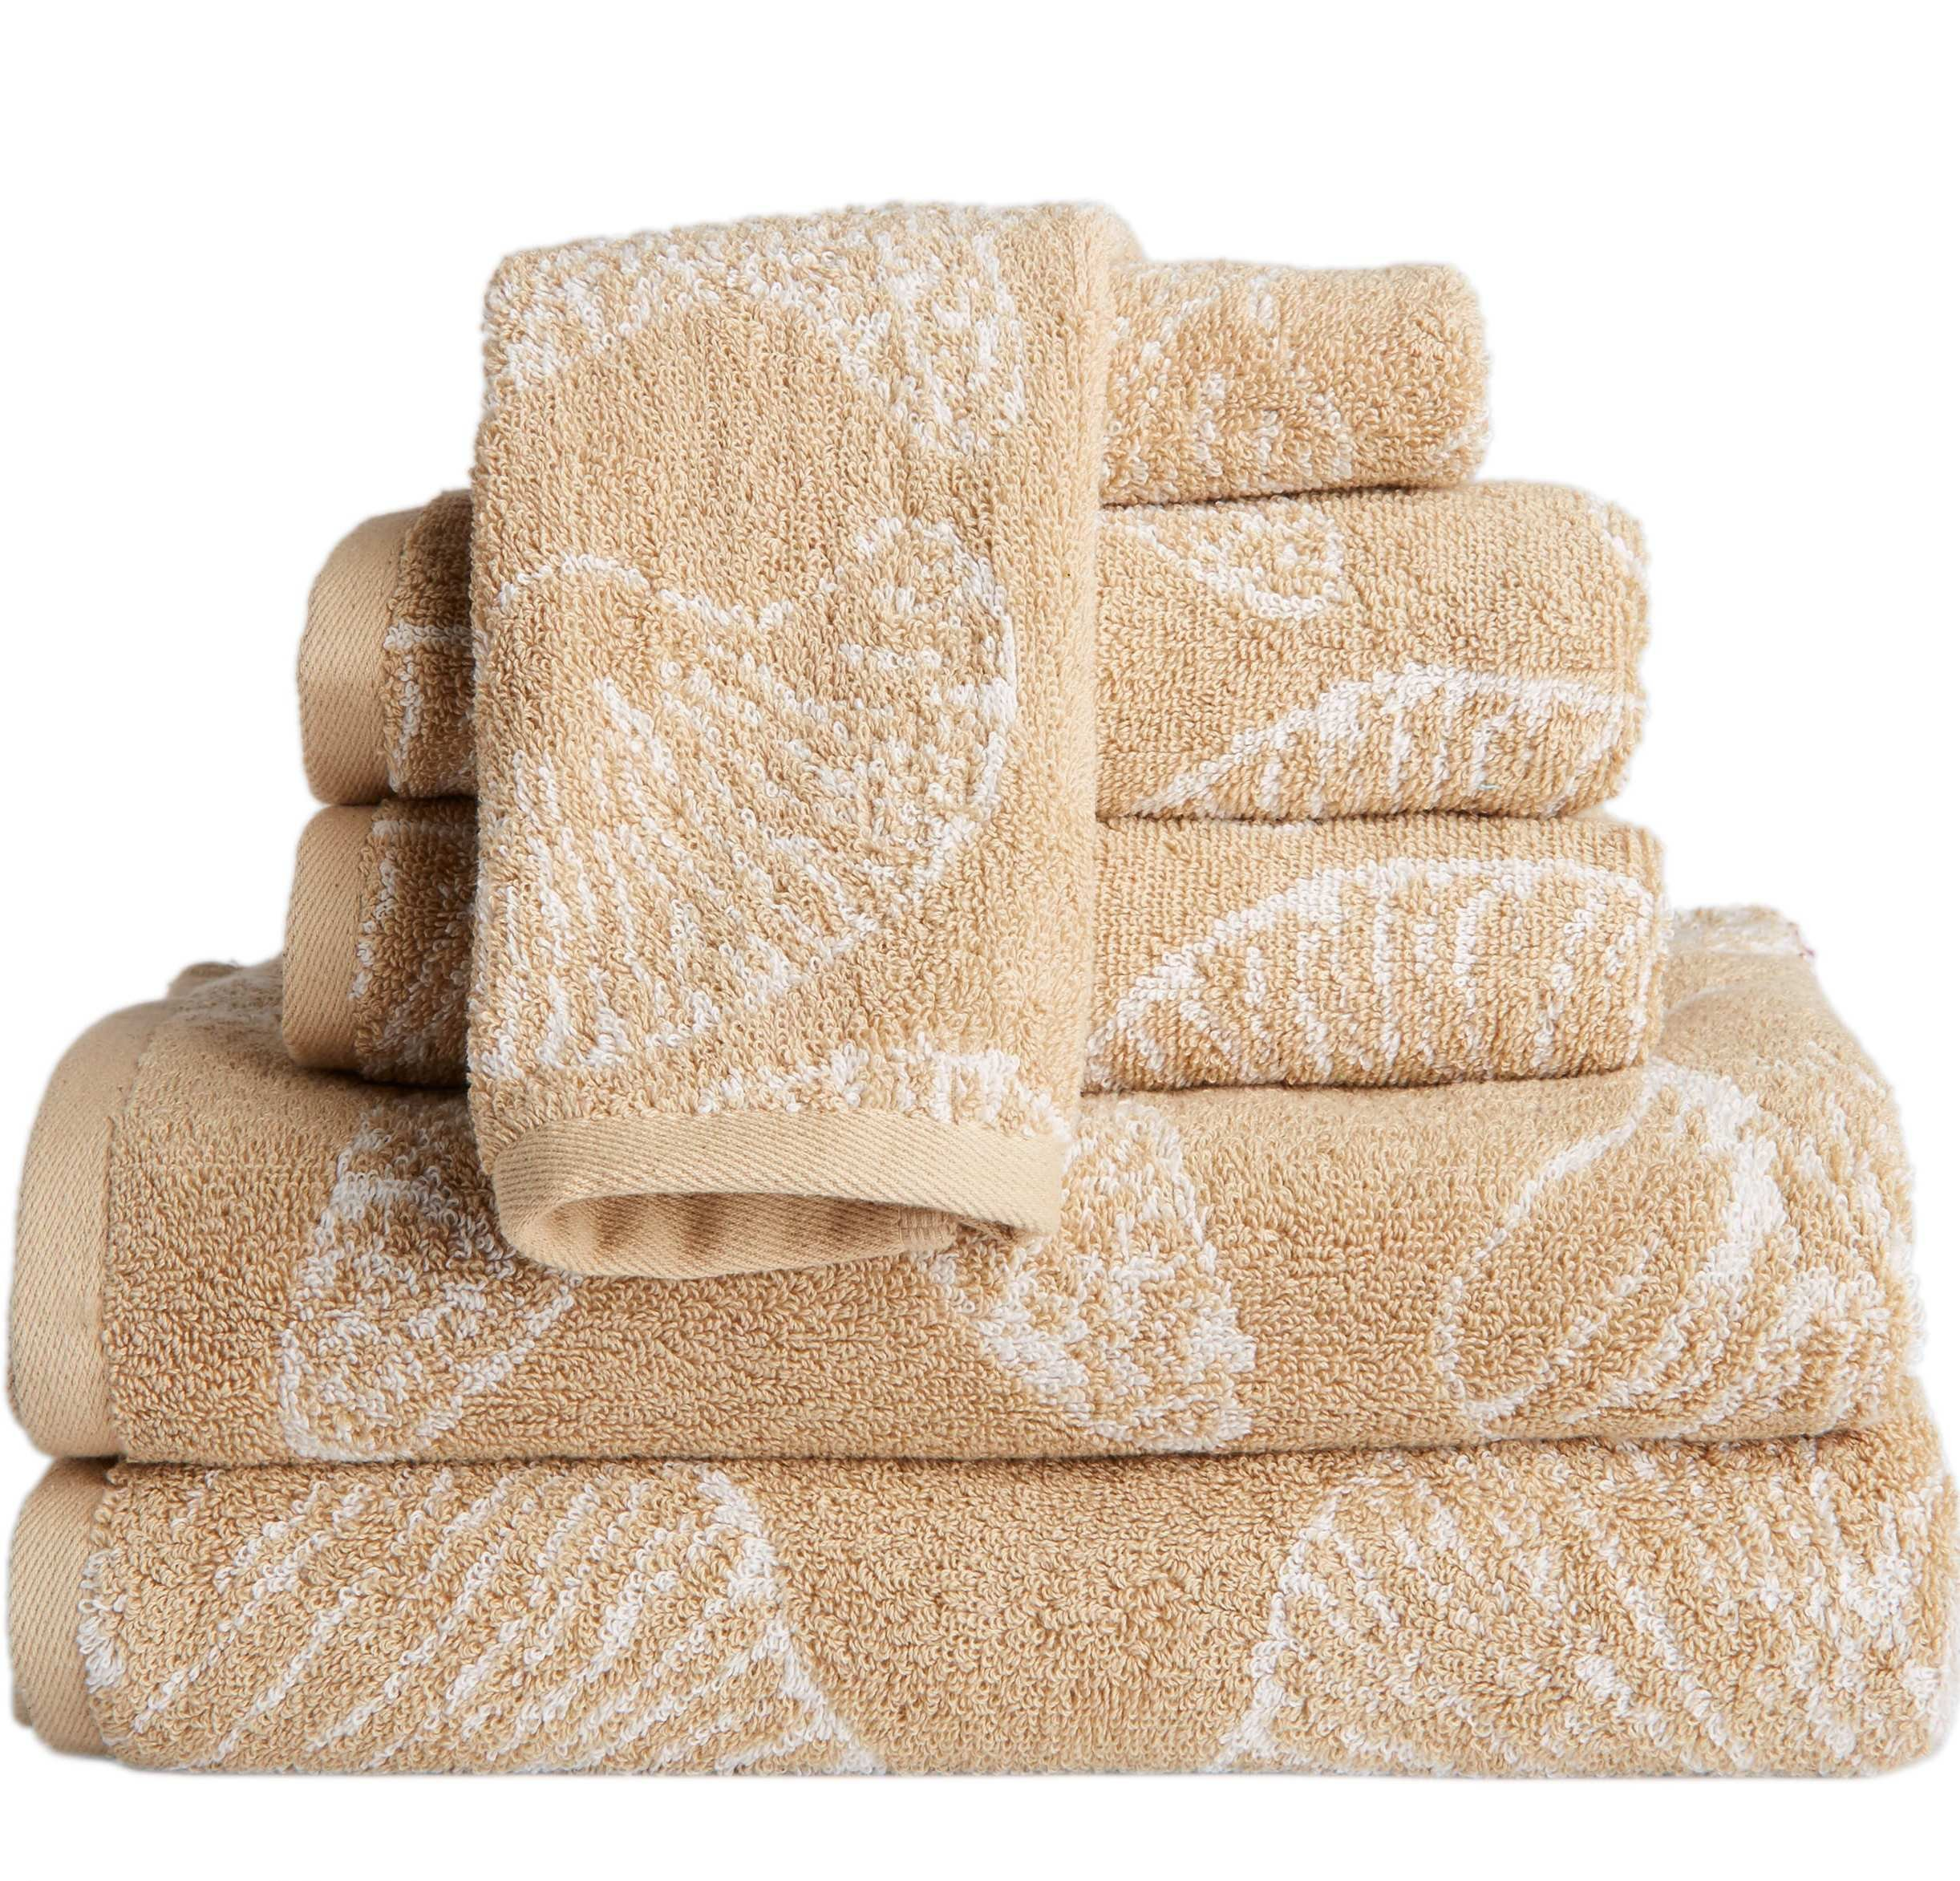 OV 6 Piece Beige Beach Theme Towel Set, Coastal Jacquard Nautical Sea Shell Pattern, Shells Motif Oversize Bathroom Towels Extra Long Soft Cozy Absorbent Wash Cloth Solid Color Bathroom, Cotton